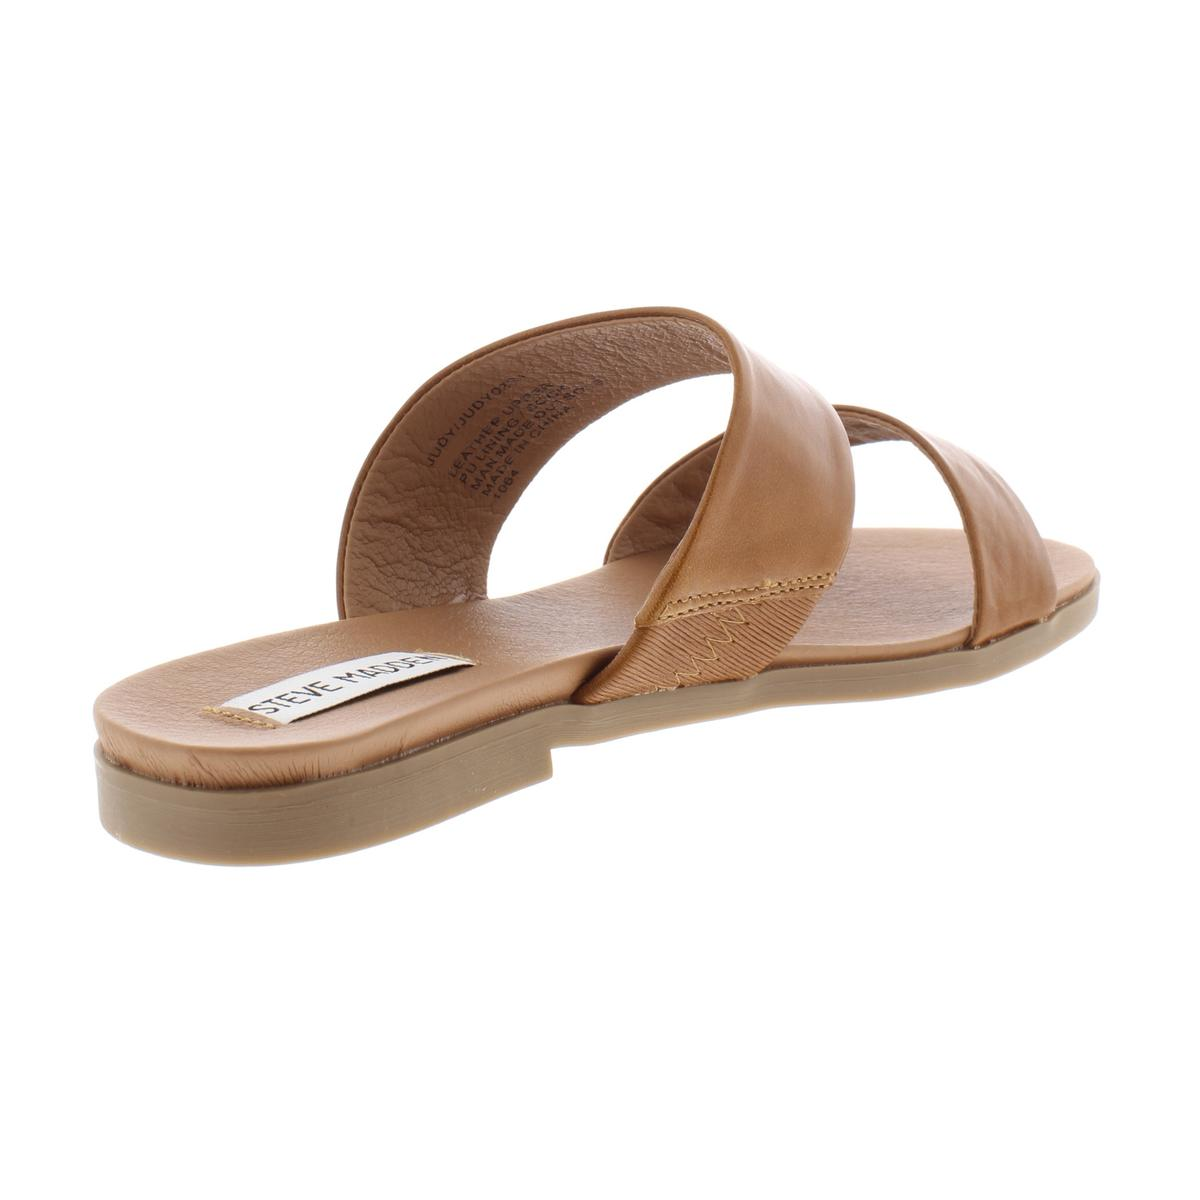 Steve-Madden-Womens-Judy-Leather-Sandals-Flats-Shoes-BHFO-7653 thumbnail 6